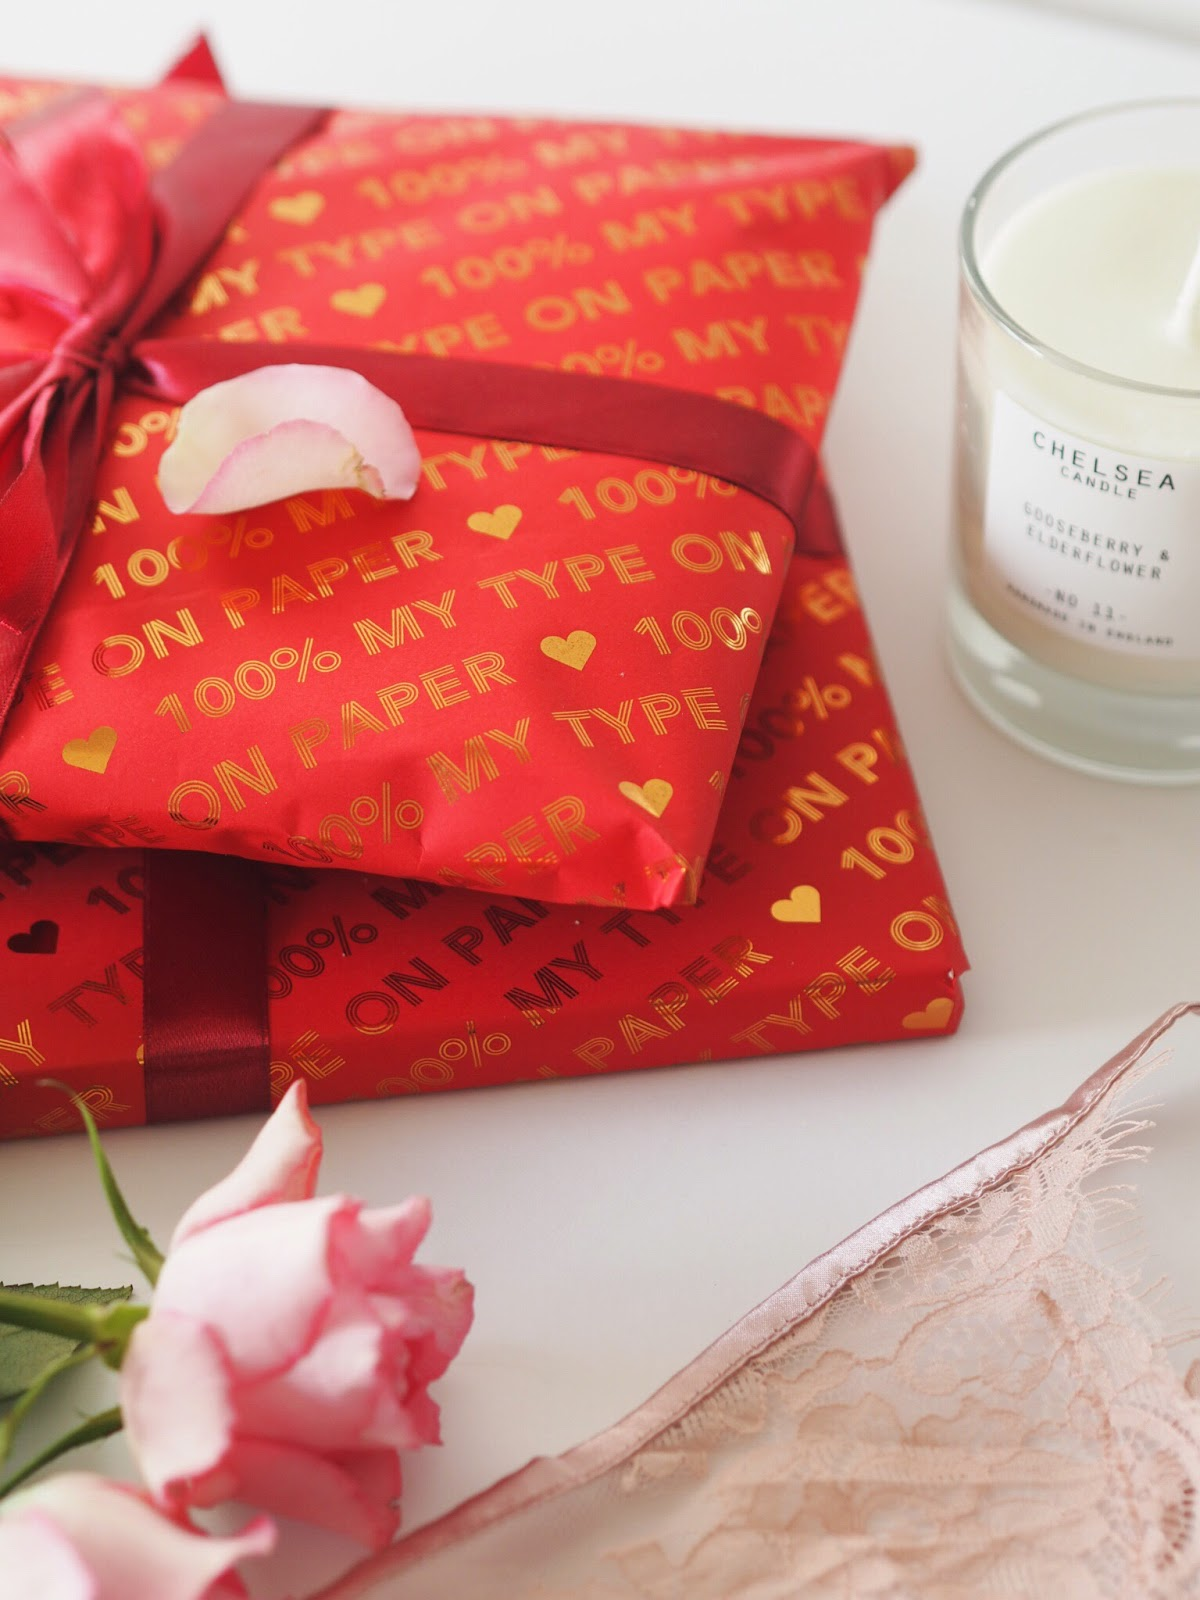 Cosy Valentines Pretty Gifted Personalised Wrapping Paper, Red and Copper, 100% My Type on Paper